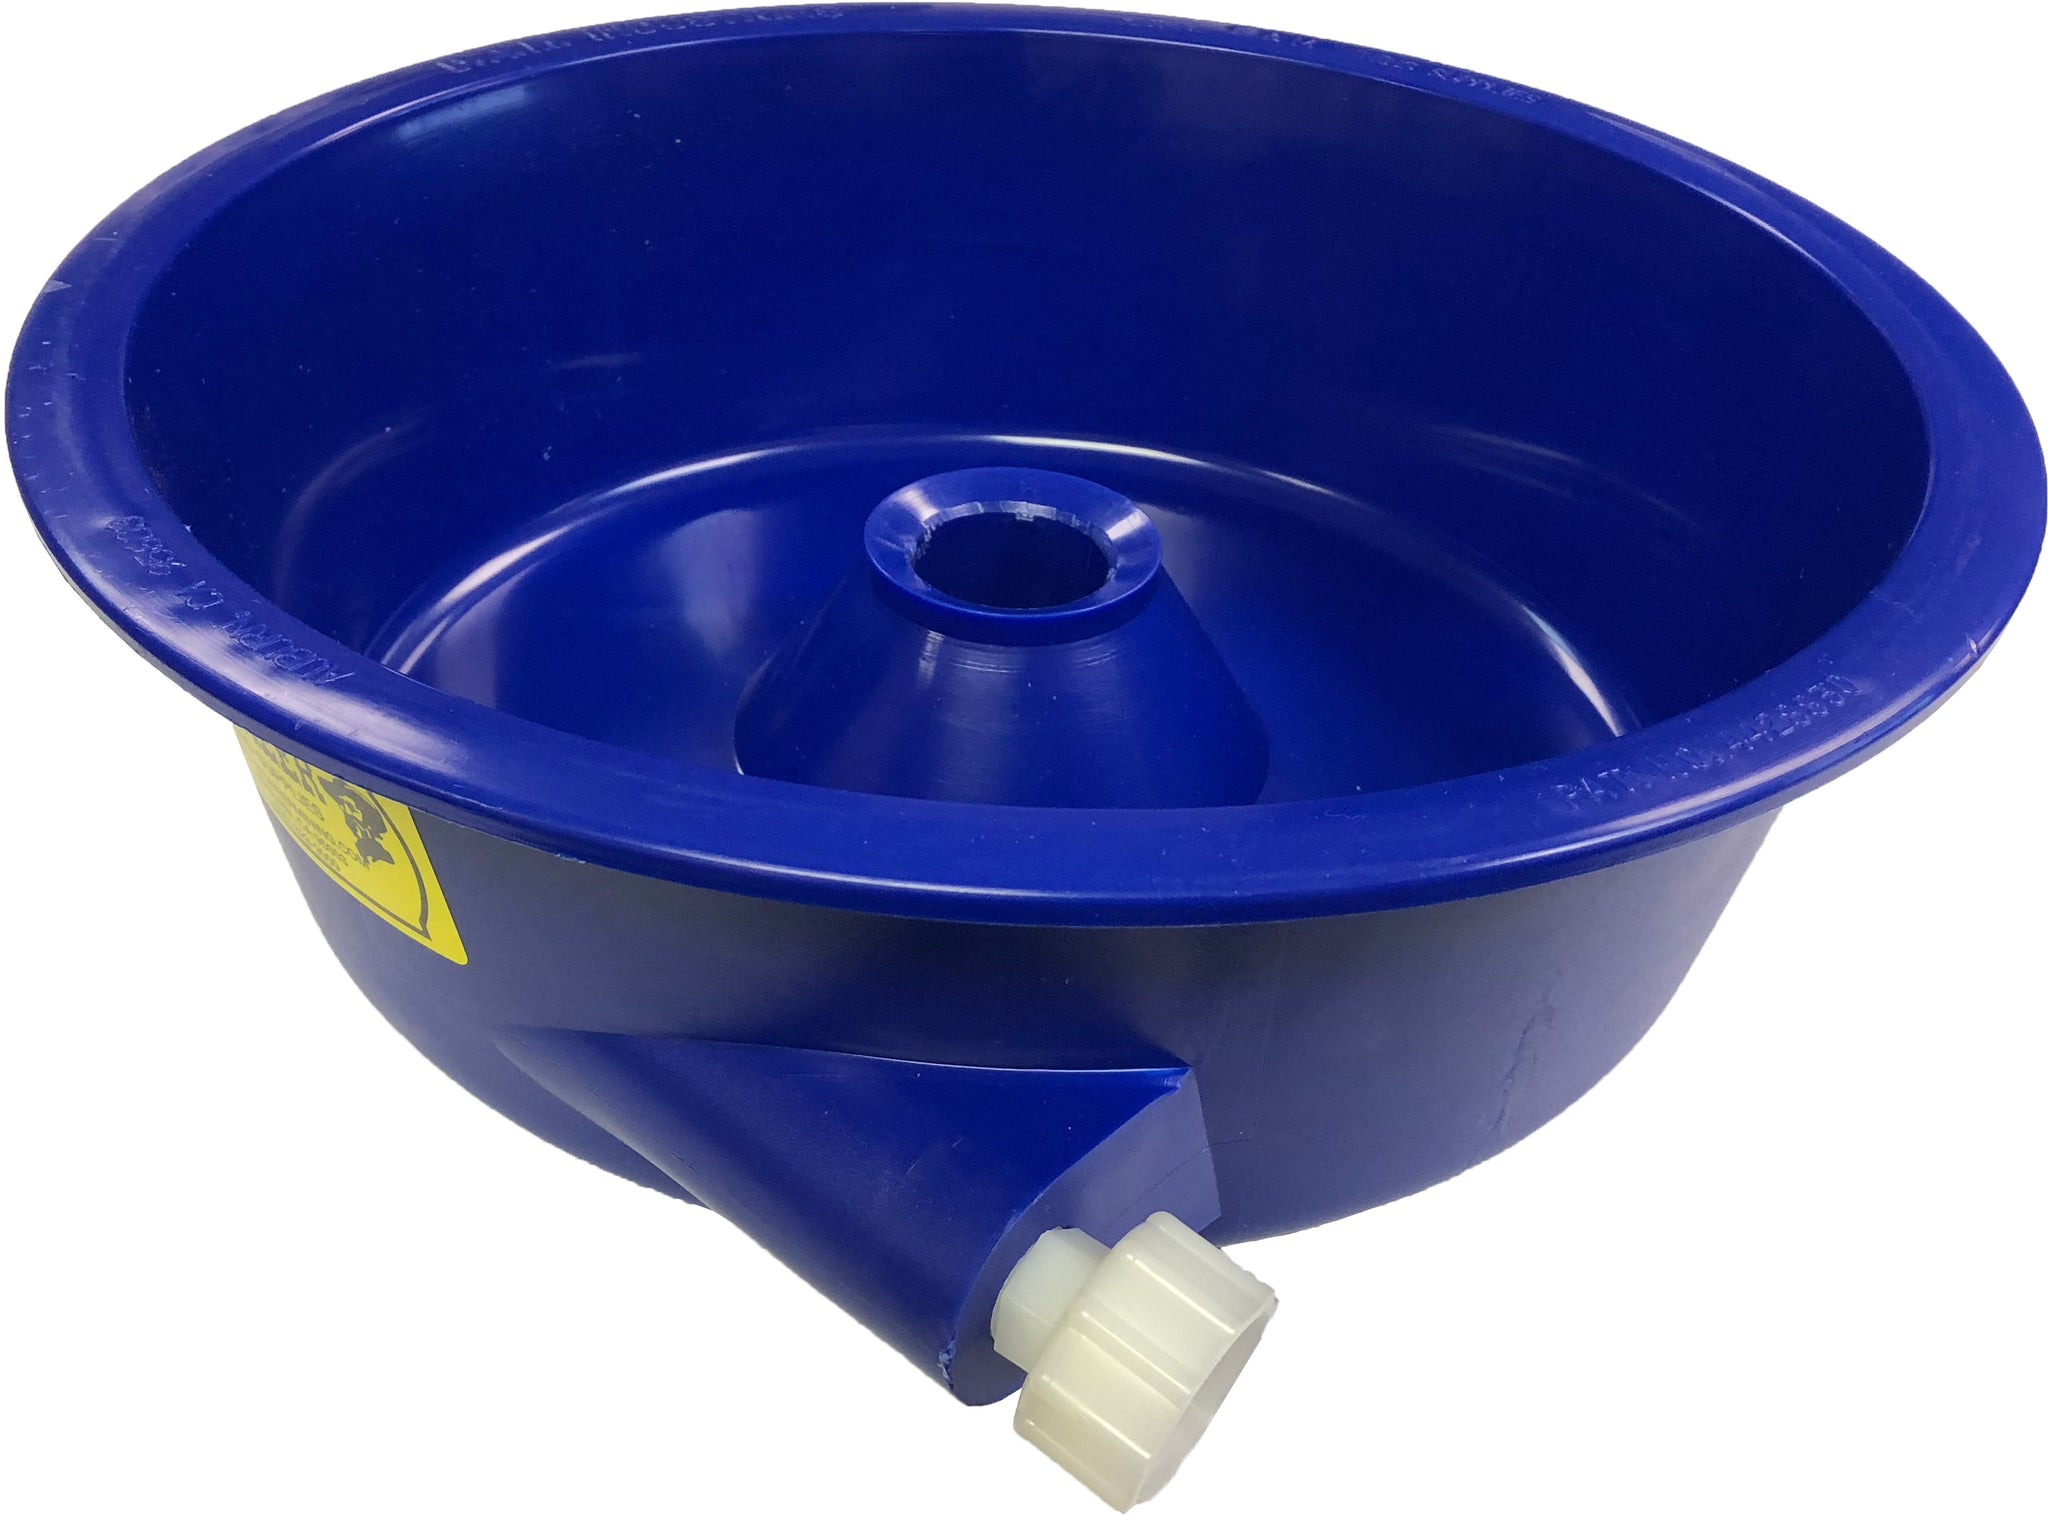 Blue Bowl Concentrator Bowl Only